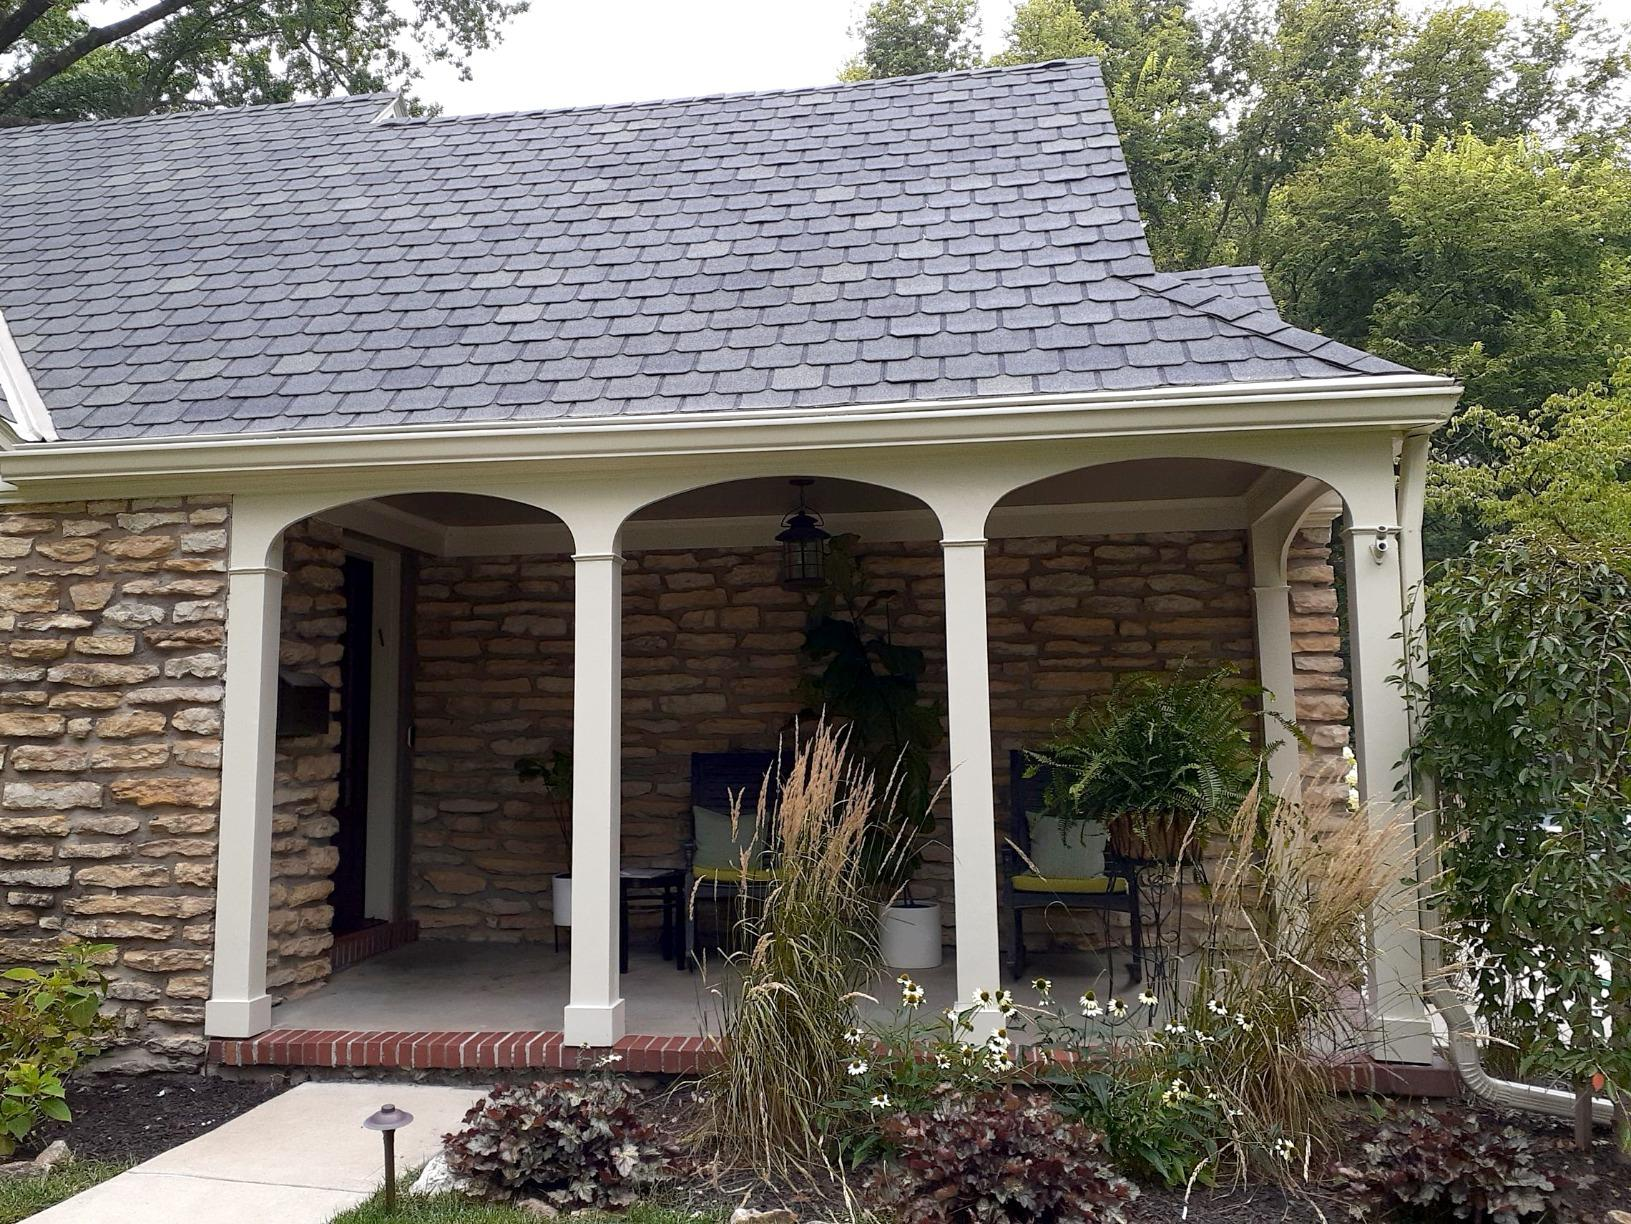 Gutter and Gutter Guard Installation on a Home in Leawood, KS - After Photo